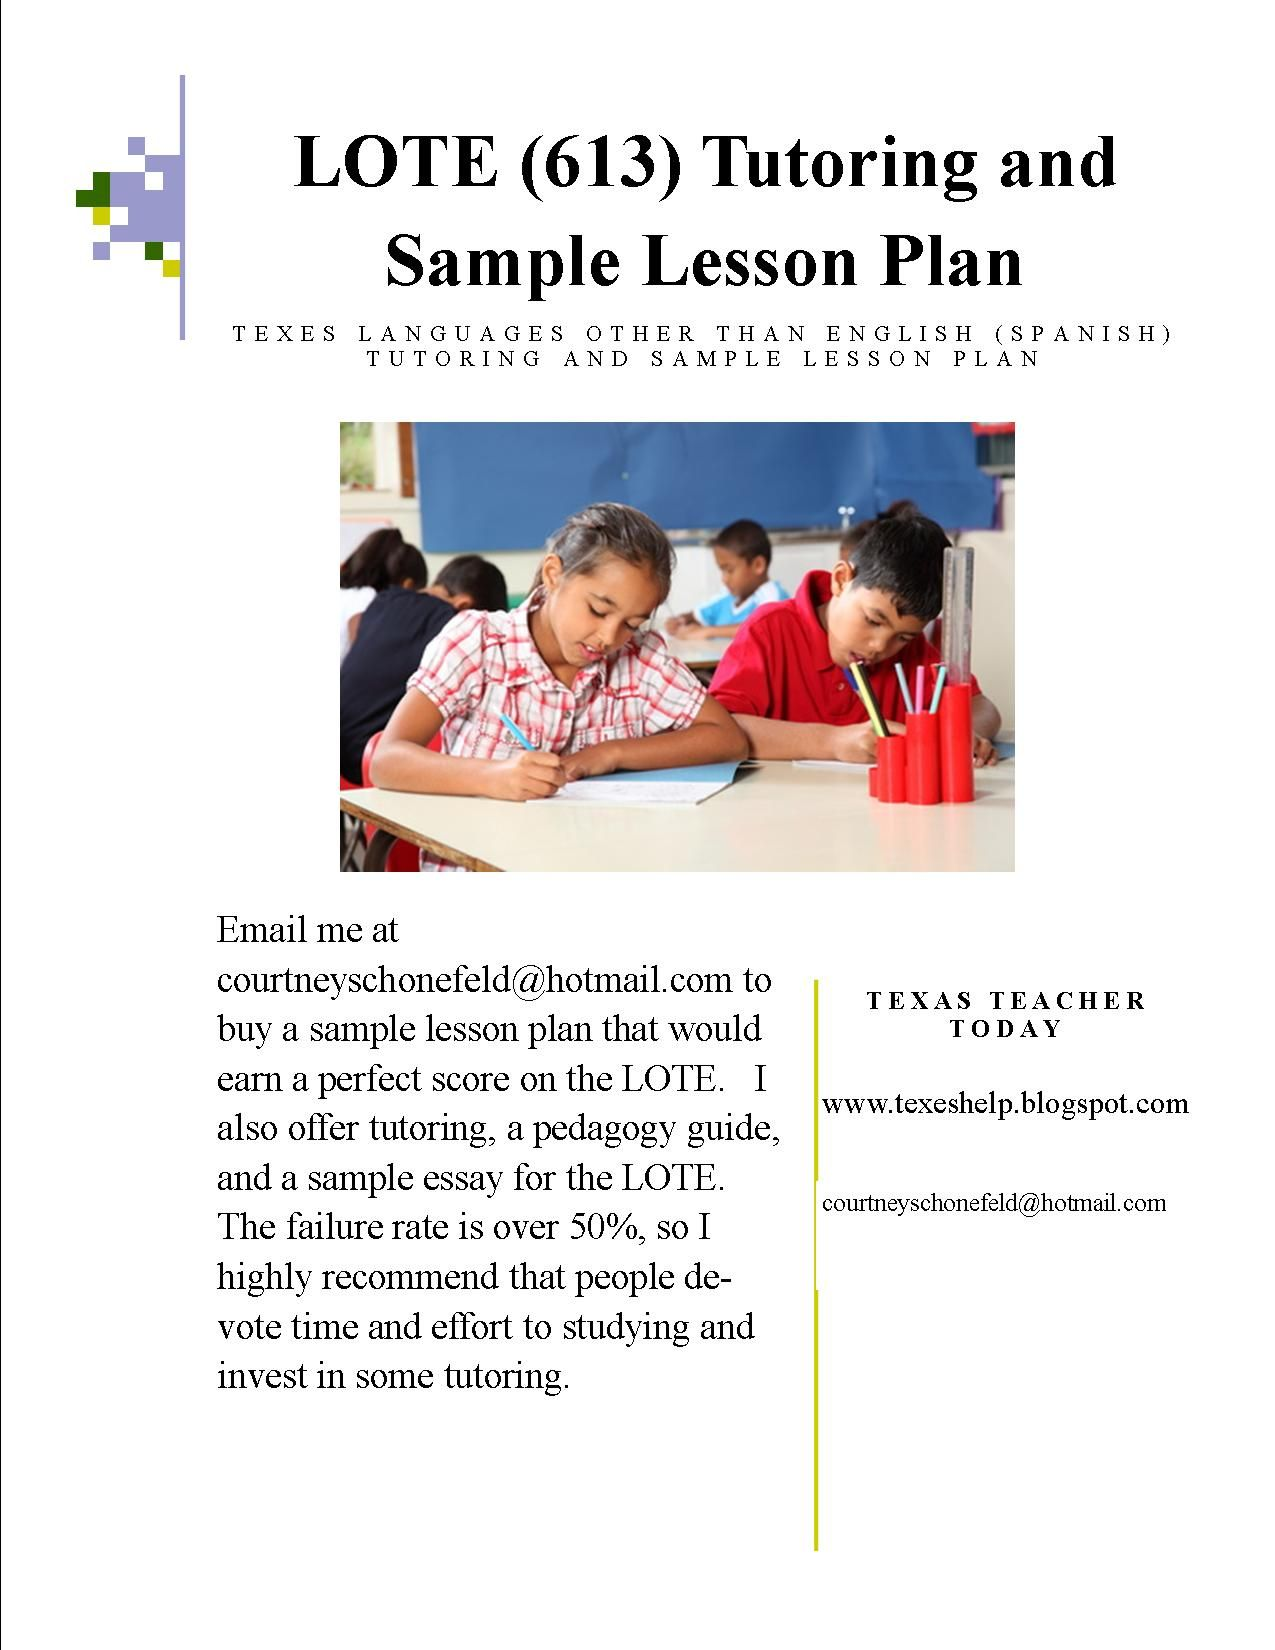 LOTE Spanish Example Lesson Plan. This is an example of a lesson plan that  would earn a perfect score on the LOTE Spanish exam.